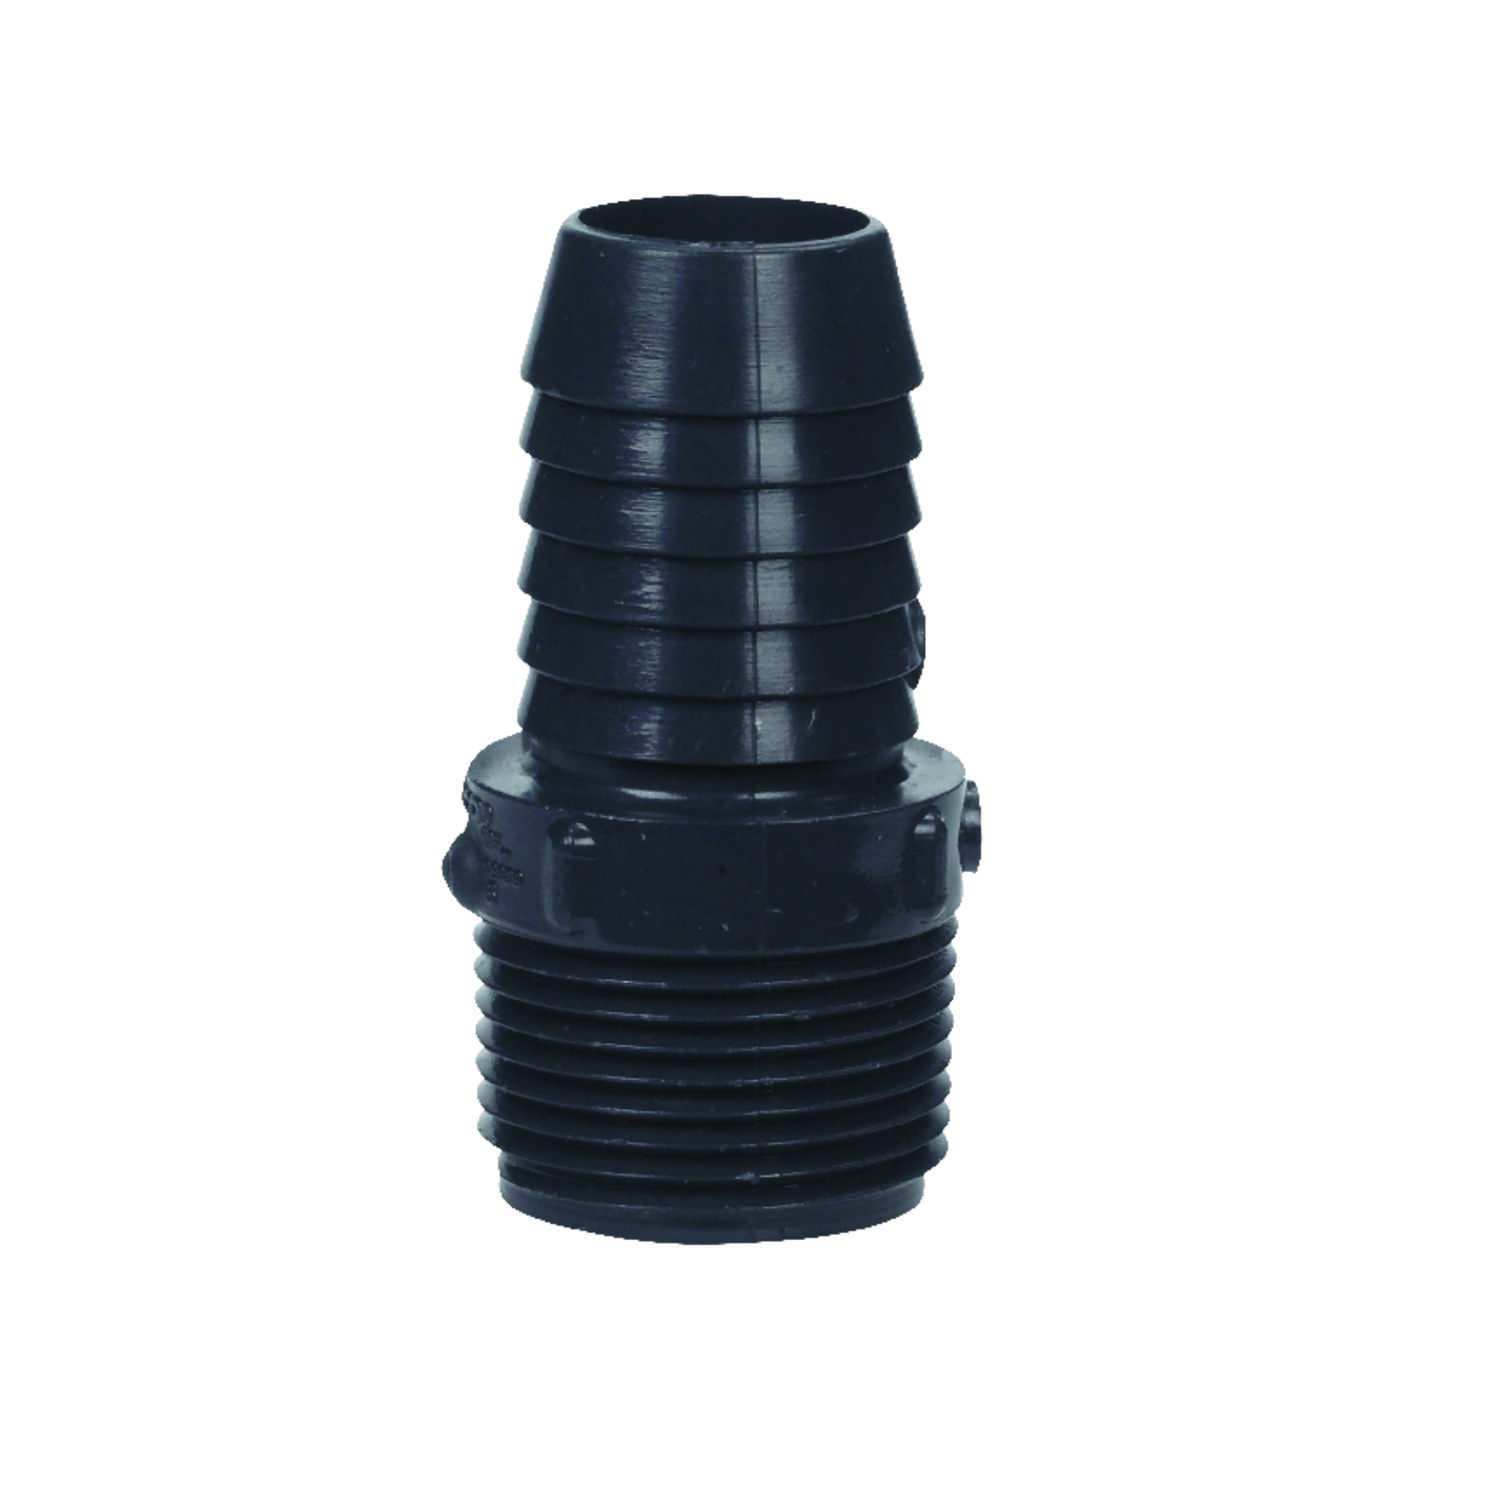 Lasco  1 in. Insert   x 1 in. Dia. MPT  Insert Adapter